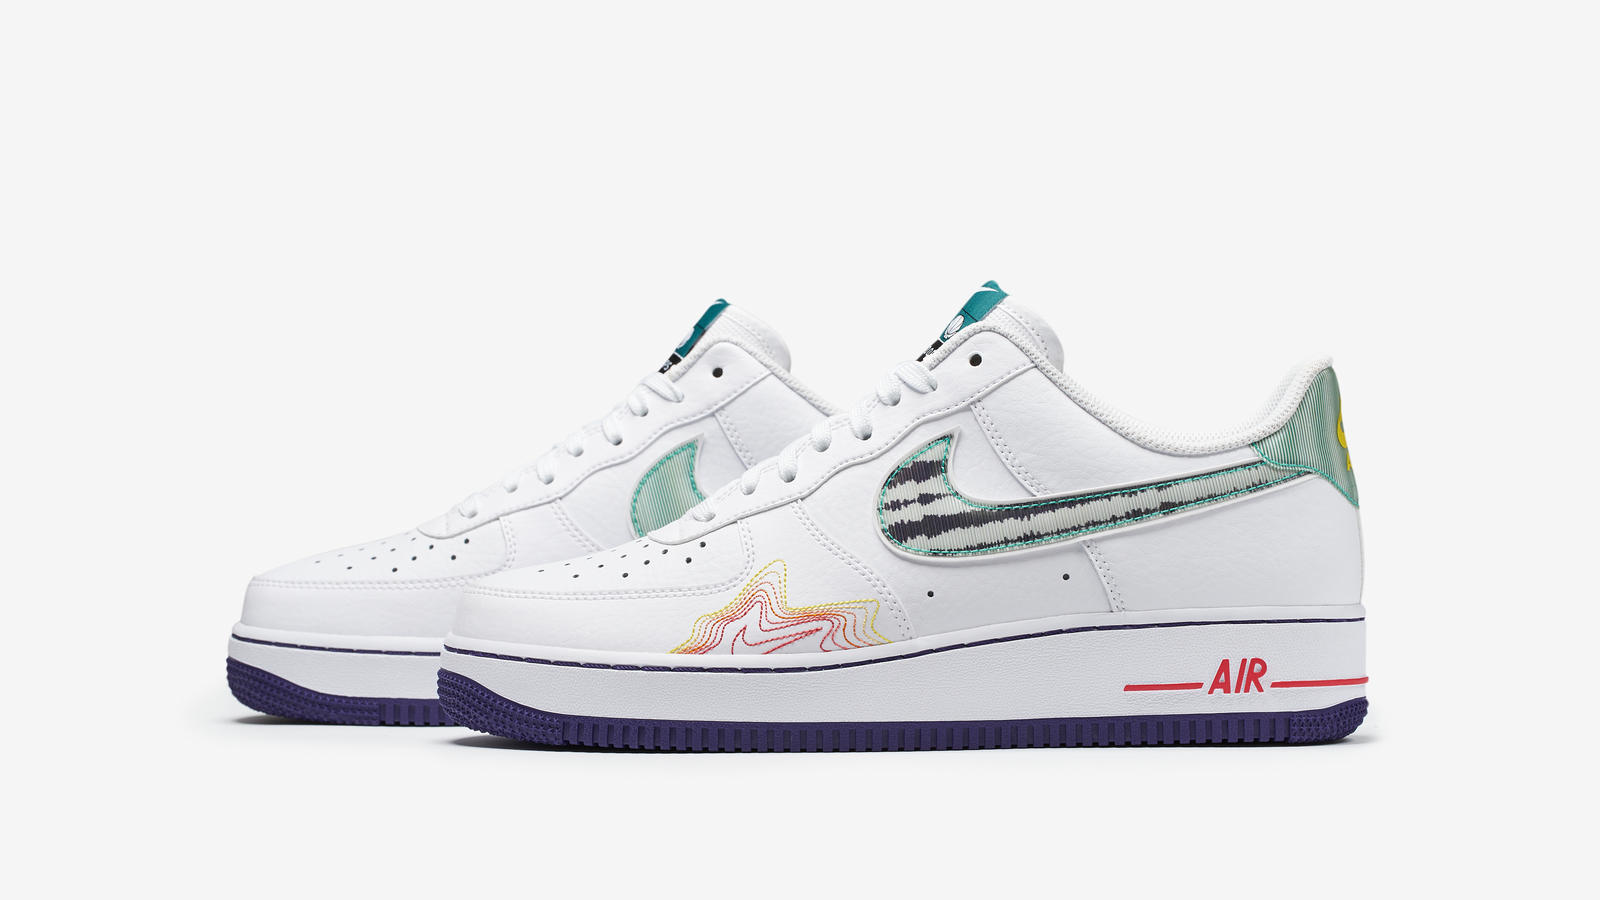 Luka Doncic Air Jordan 1 Mid De Aaron Fox Brittney Griner Air Force 1 Ben Simmons Blazer Mid Official Images And Release Date Nike News